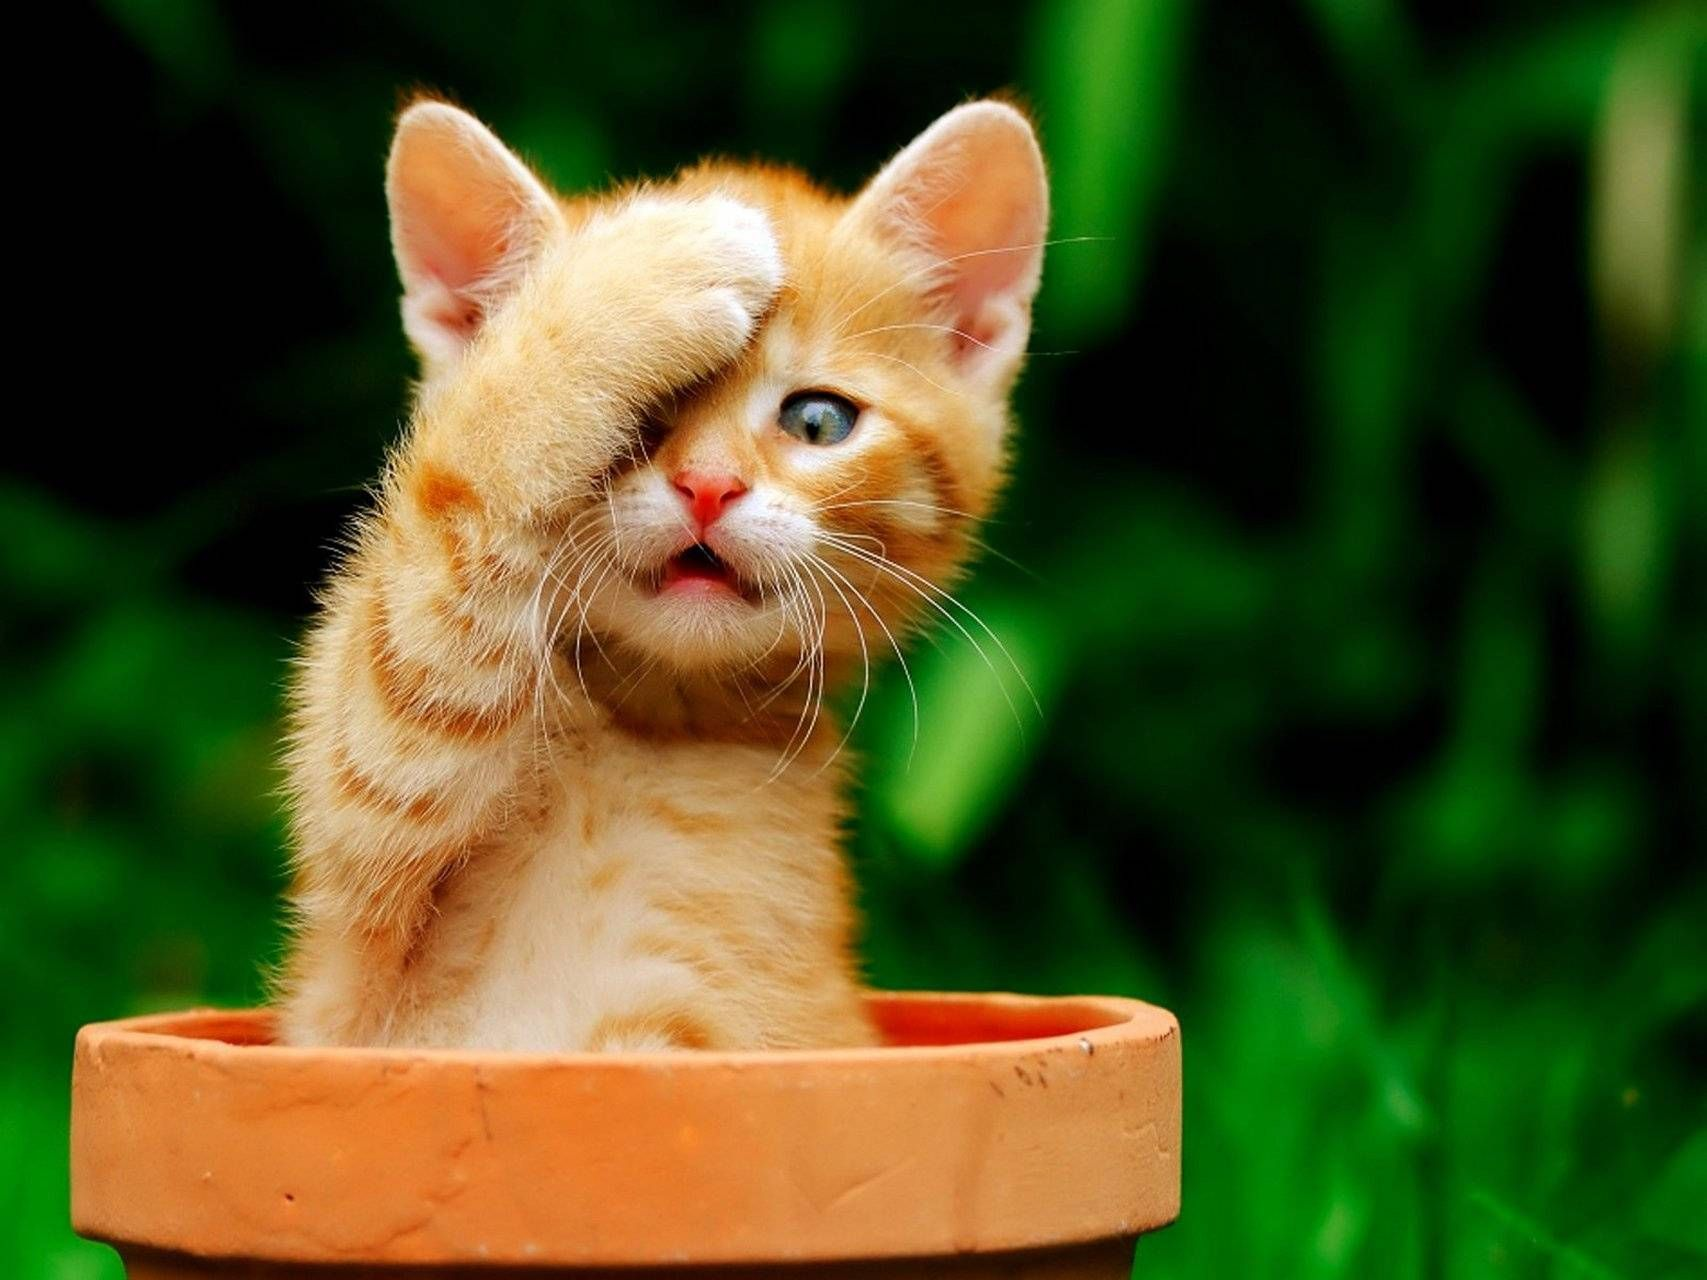 Download Funny Kitten Wallpaper By Hende09 1e Free On Zedge Now Browse Millions Of Popular Animals Wallpapers And Rin Foto Kucing Lucu Kucing Anak Kucing